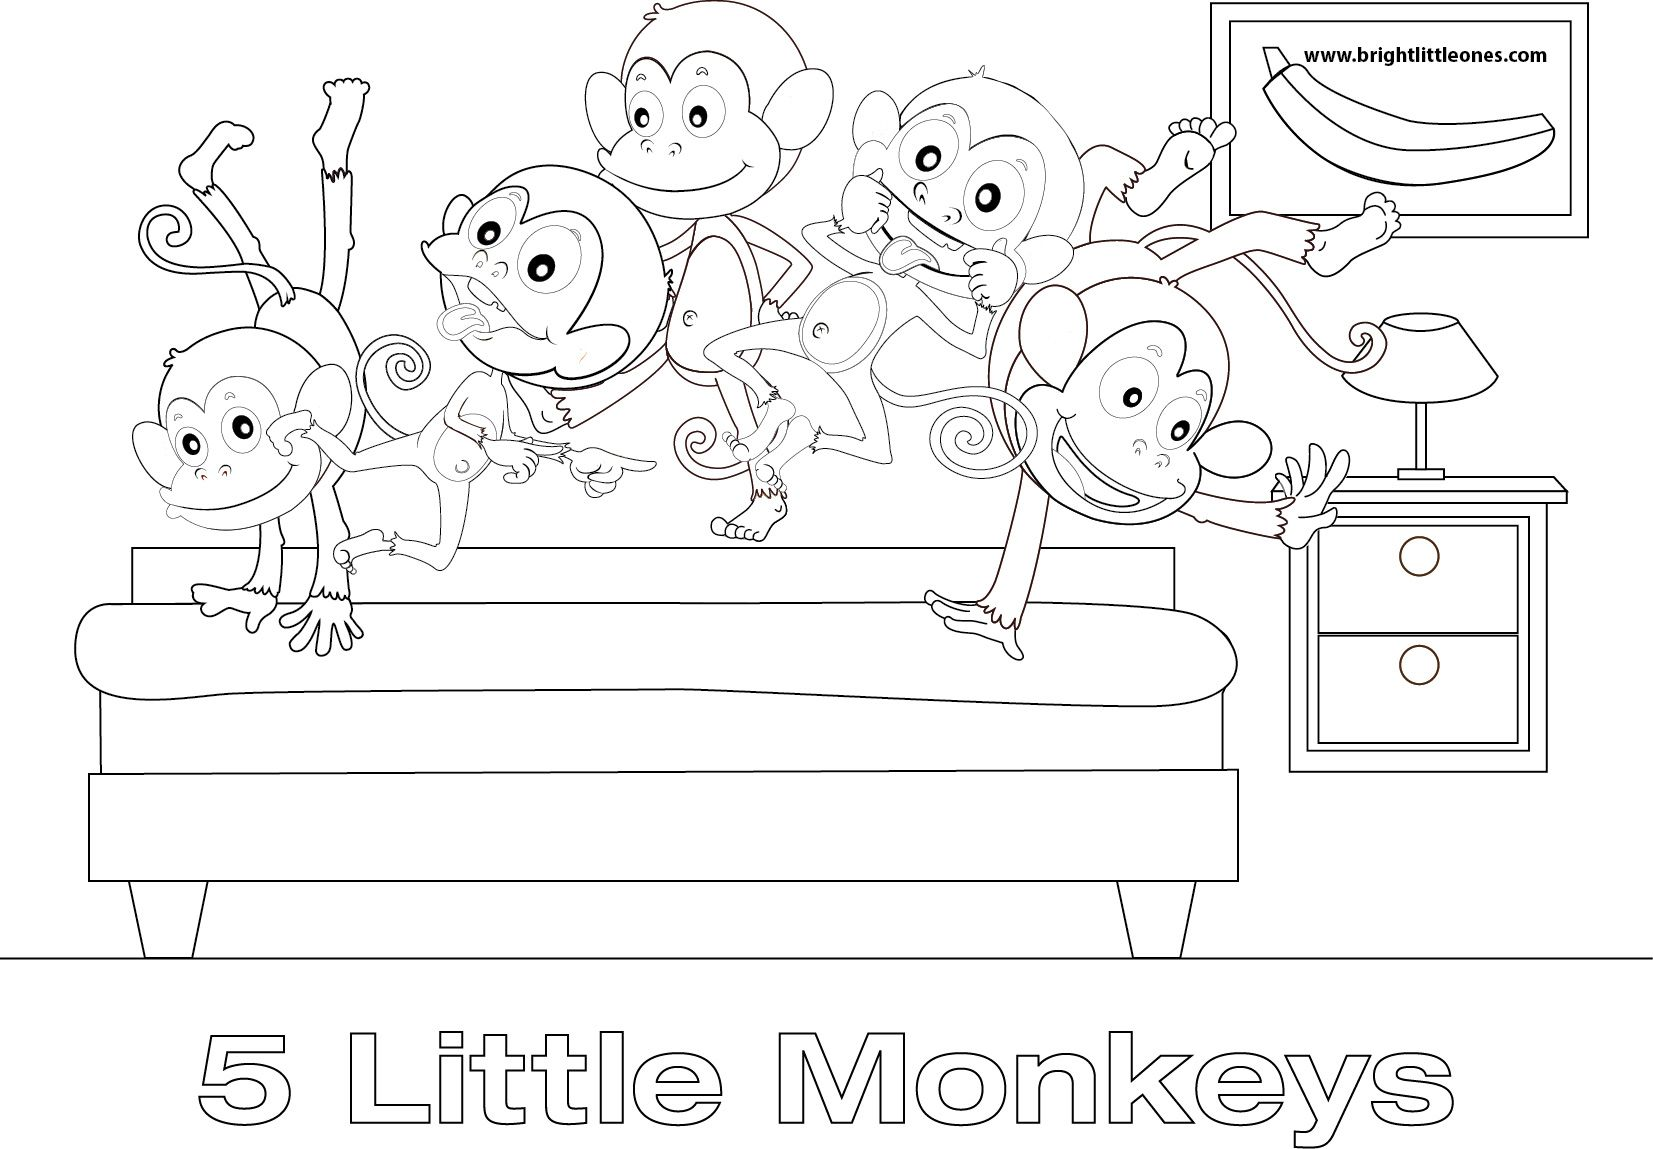 Free Printable Five Little Monkeys Coloring Sheet